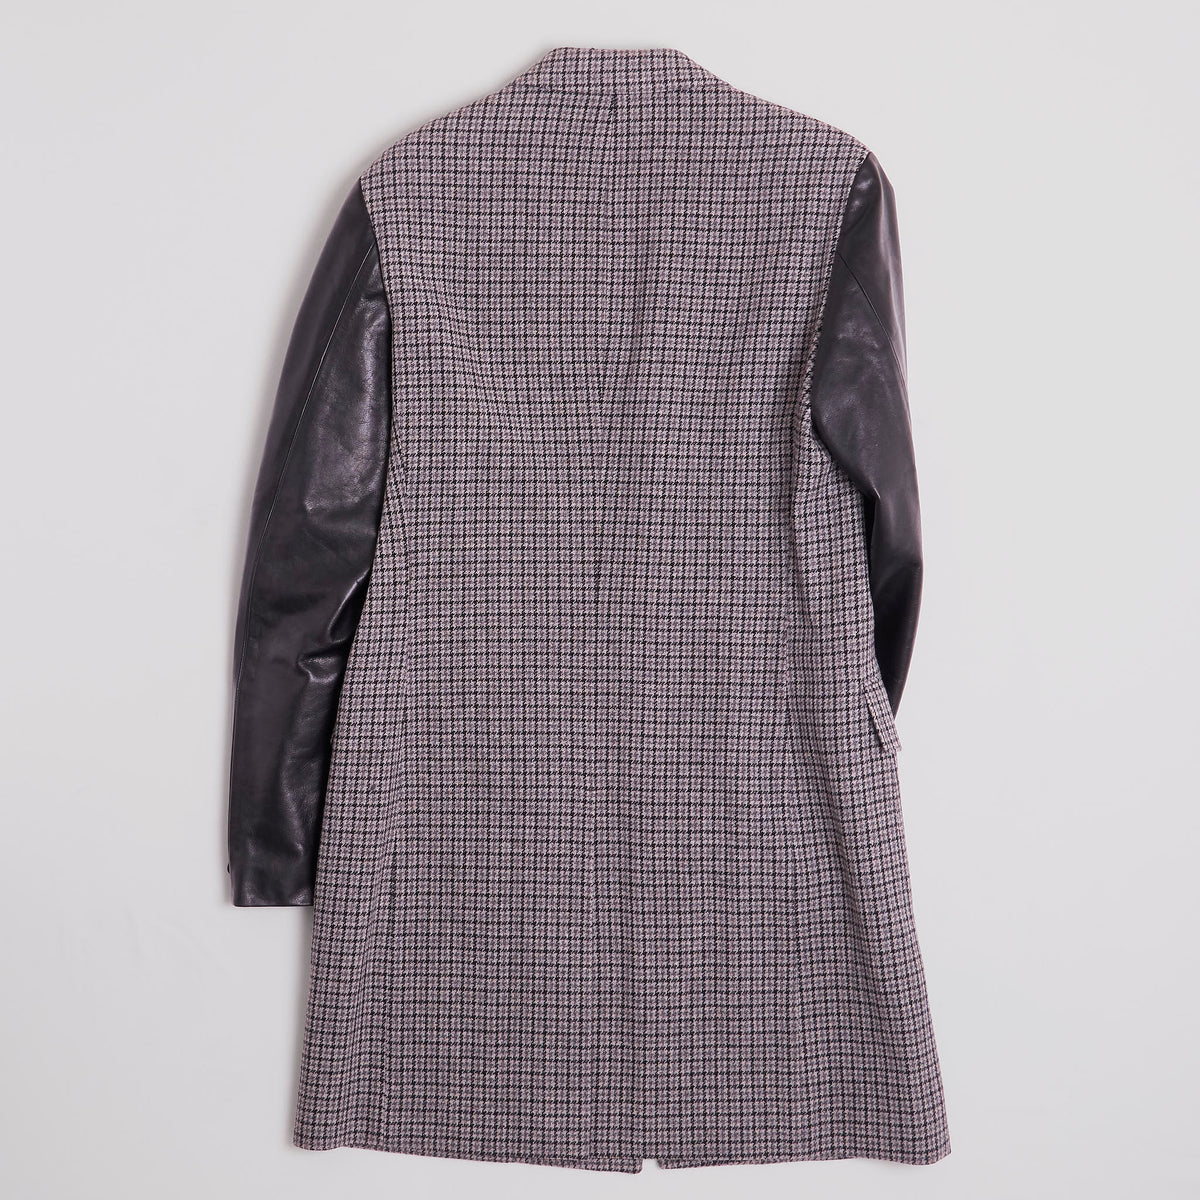 Junya Watanabe Man Wool Coat With Cordovan Sleeves